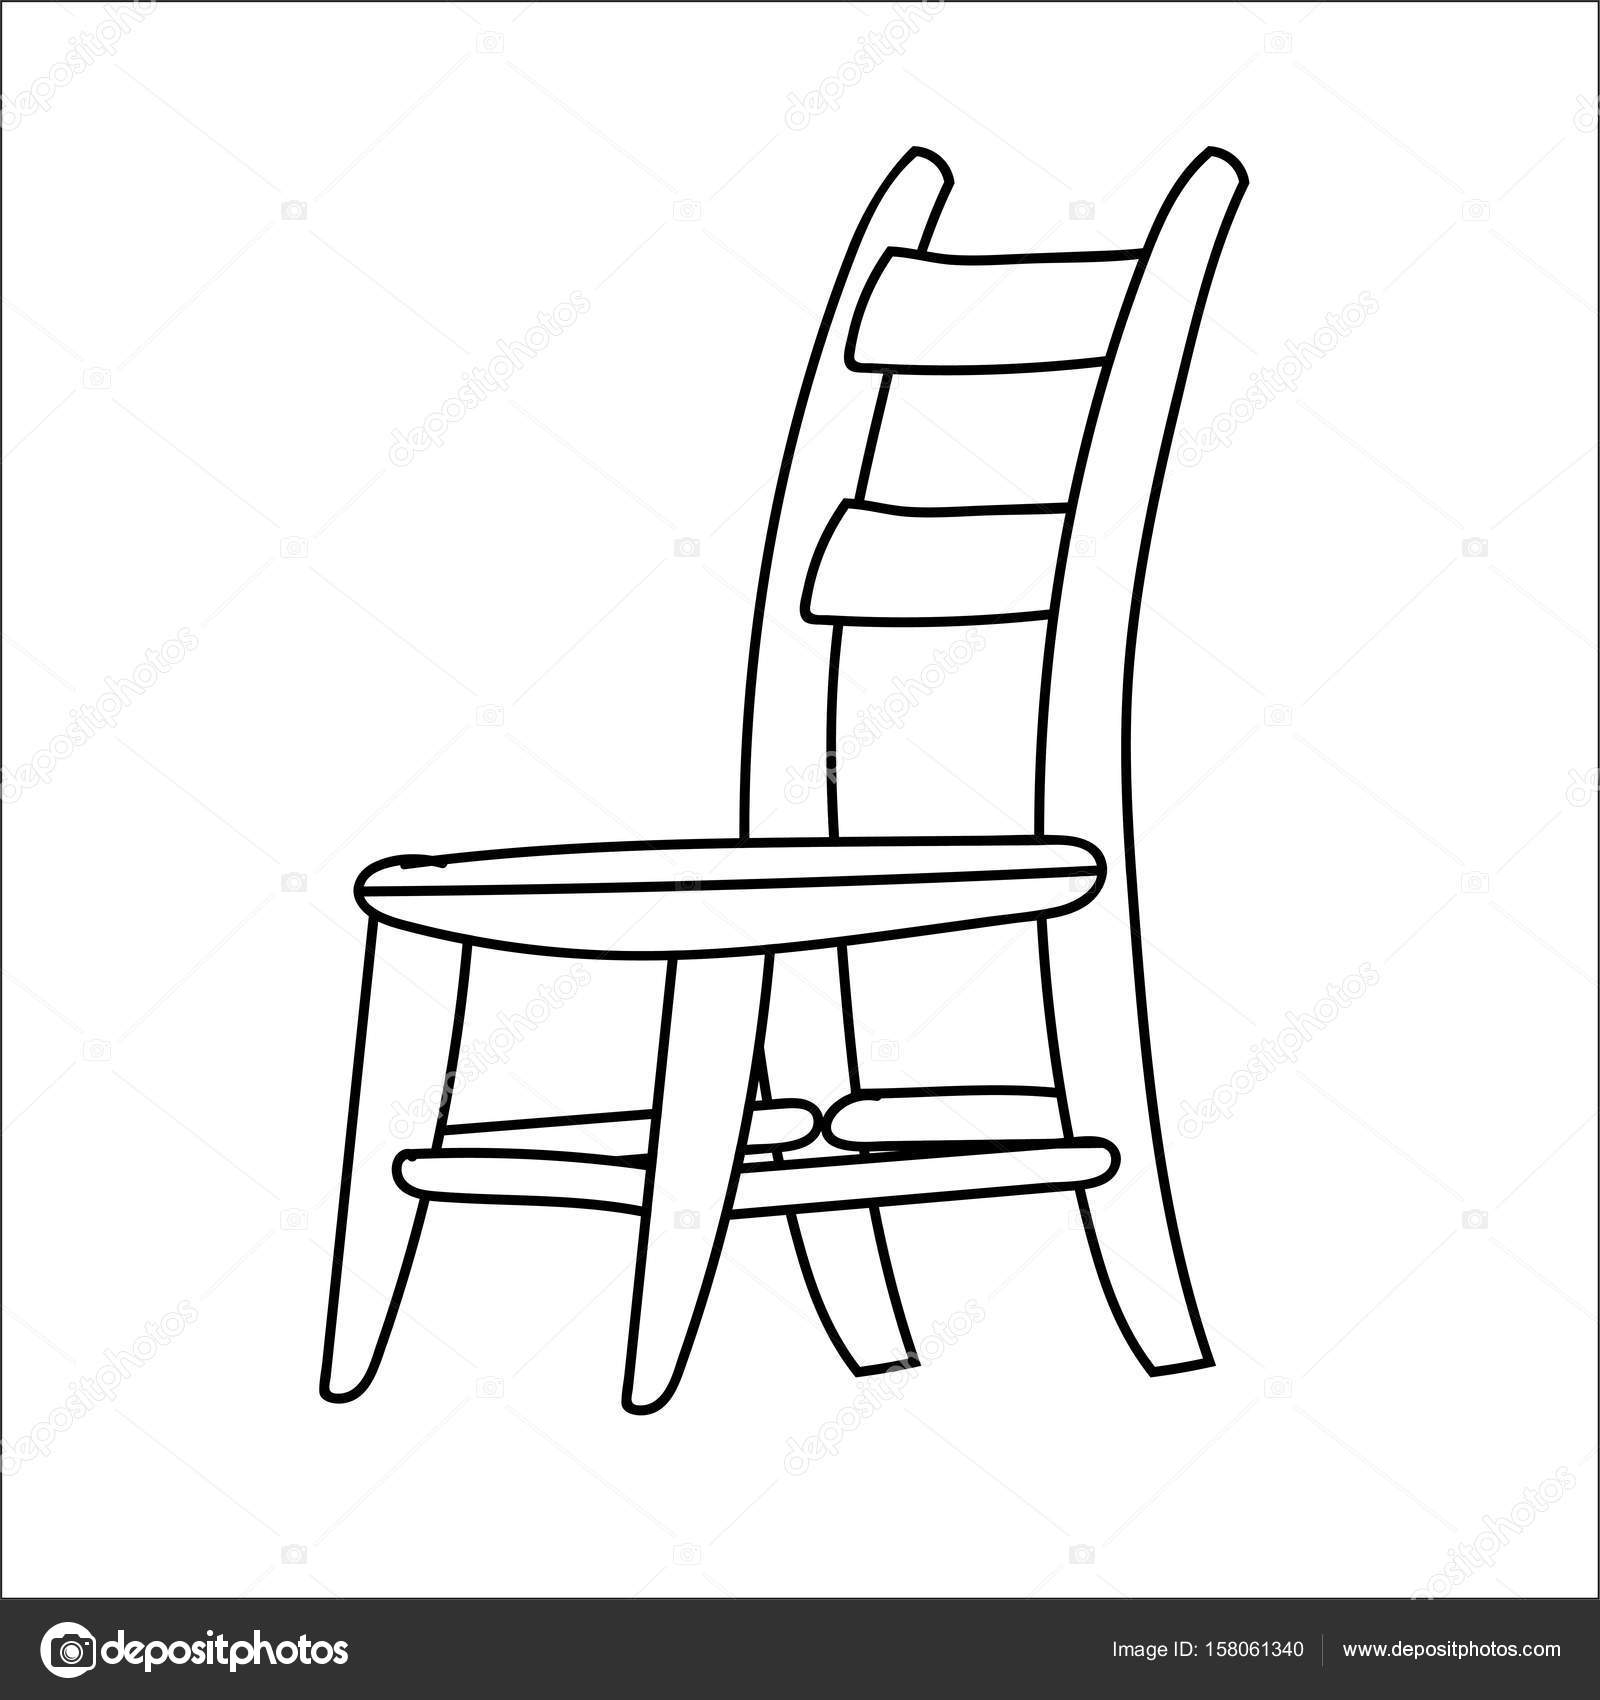 drawing chair chair line art free clip art drawing chair